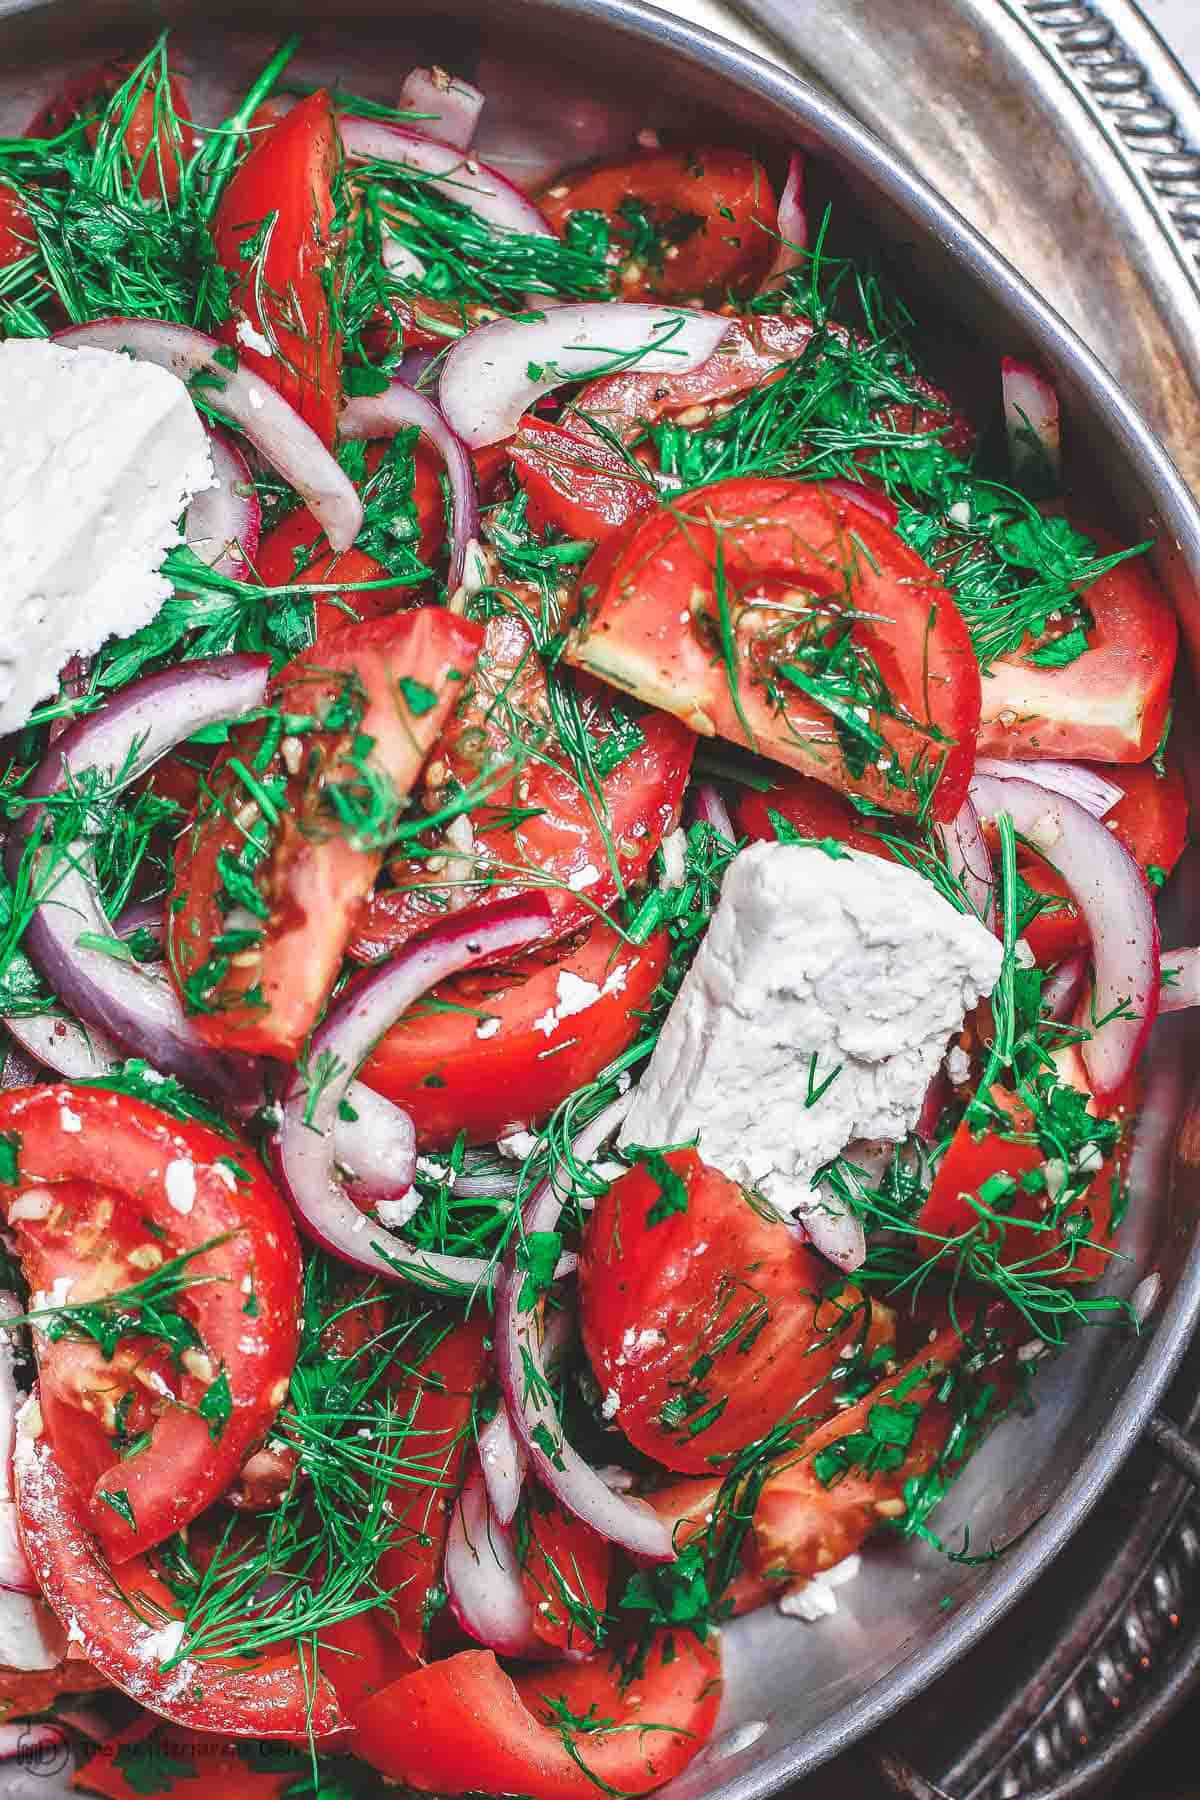 Mediterranean Herb and Tomato Salad. Part of 21 Mediterranean Christmas Brunch Recipes | The Mediterranean Dish. #christmasbrunch #brunch #mediterraneanrecipes